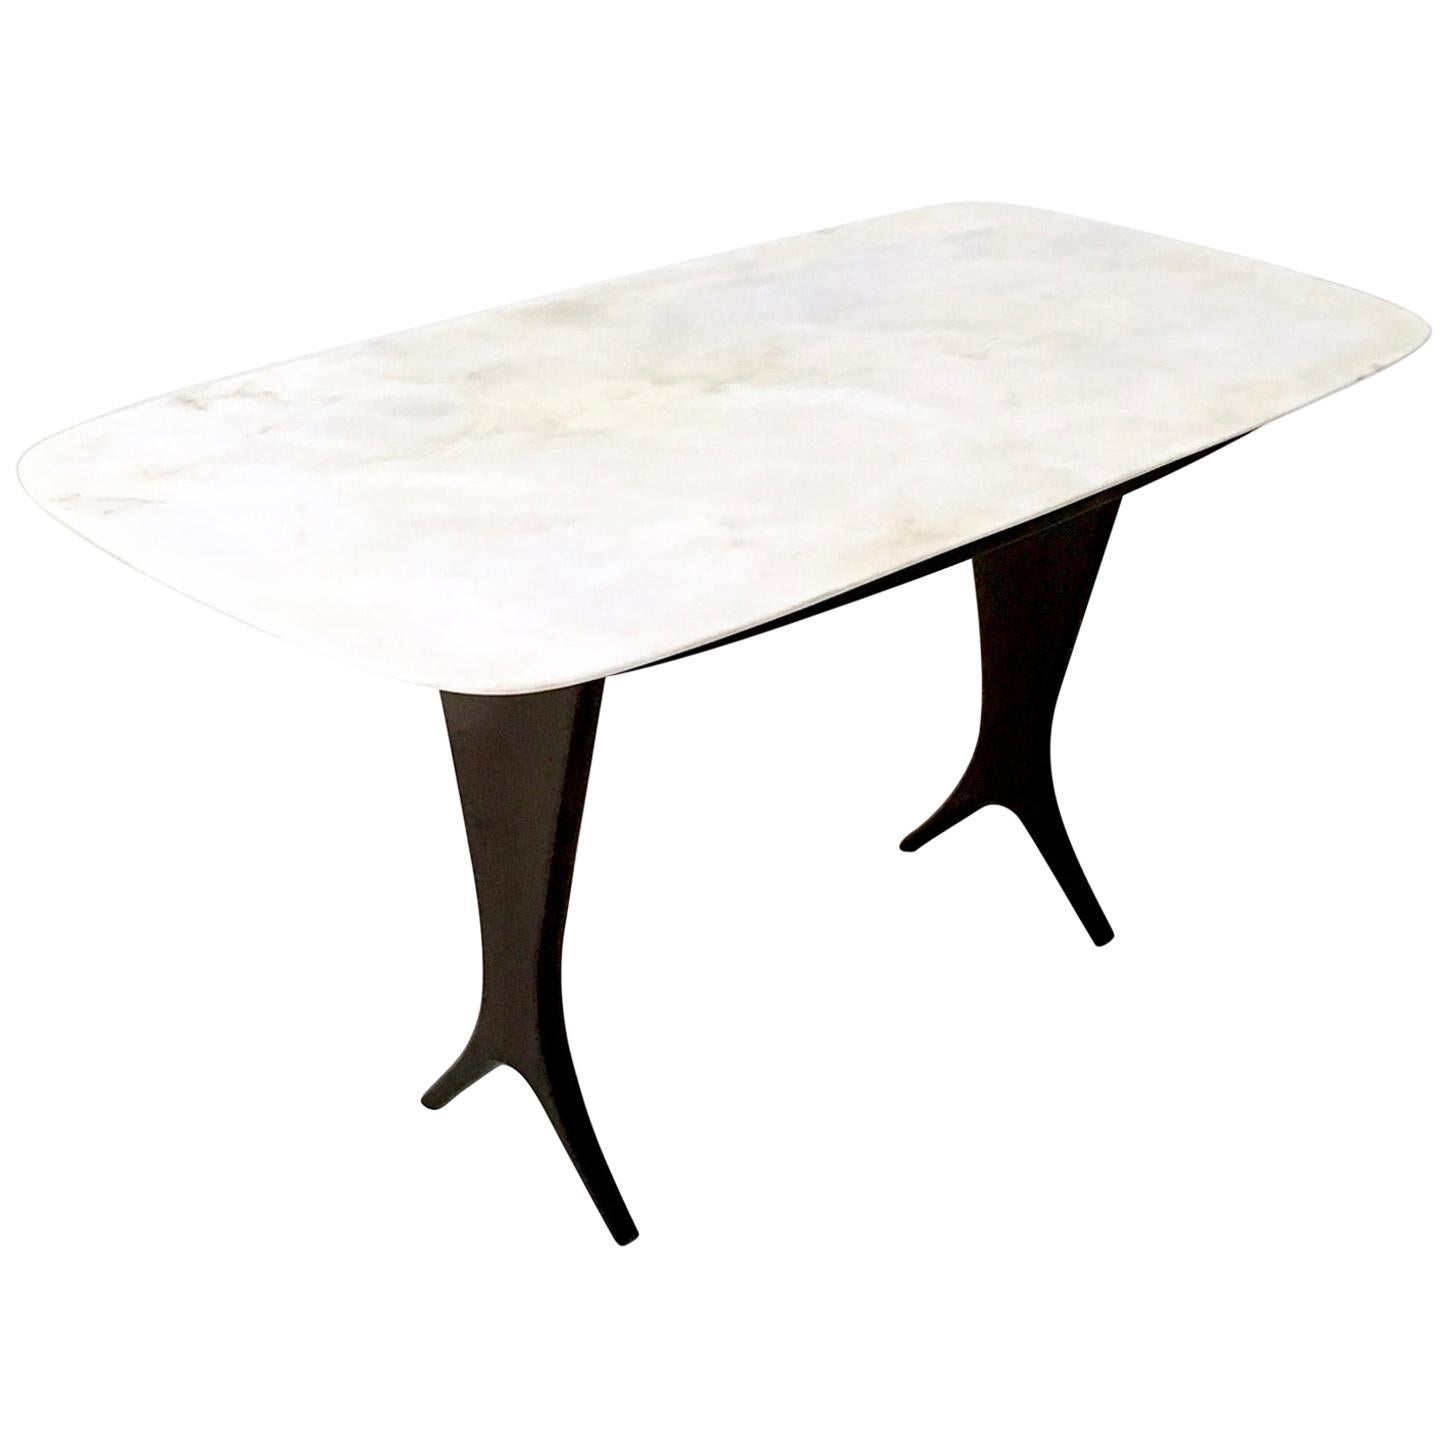 Vintage Coffee Table Attributed to Guglielmo Ulrich with Marble Top, Italy